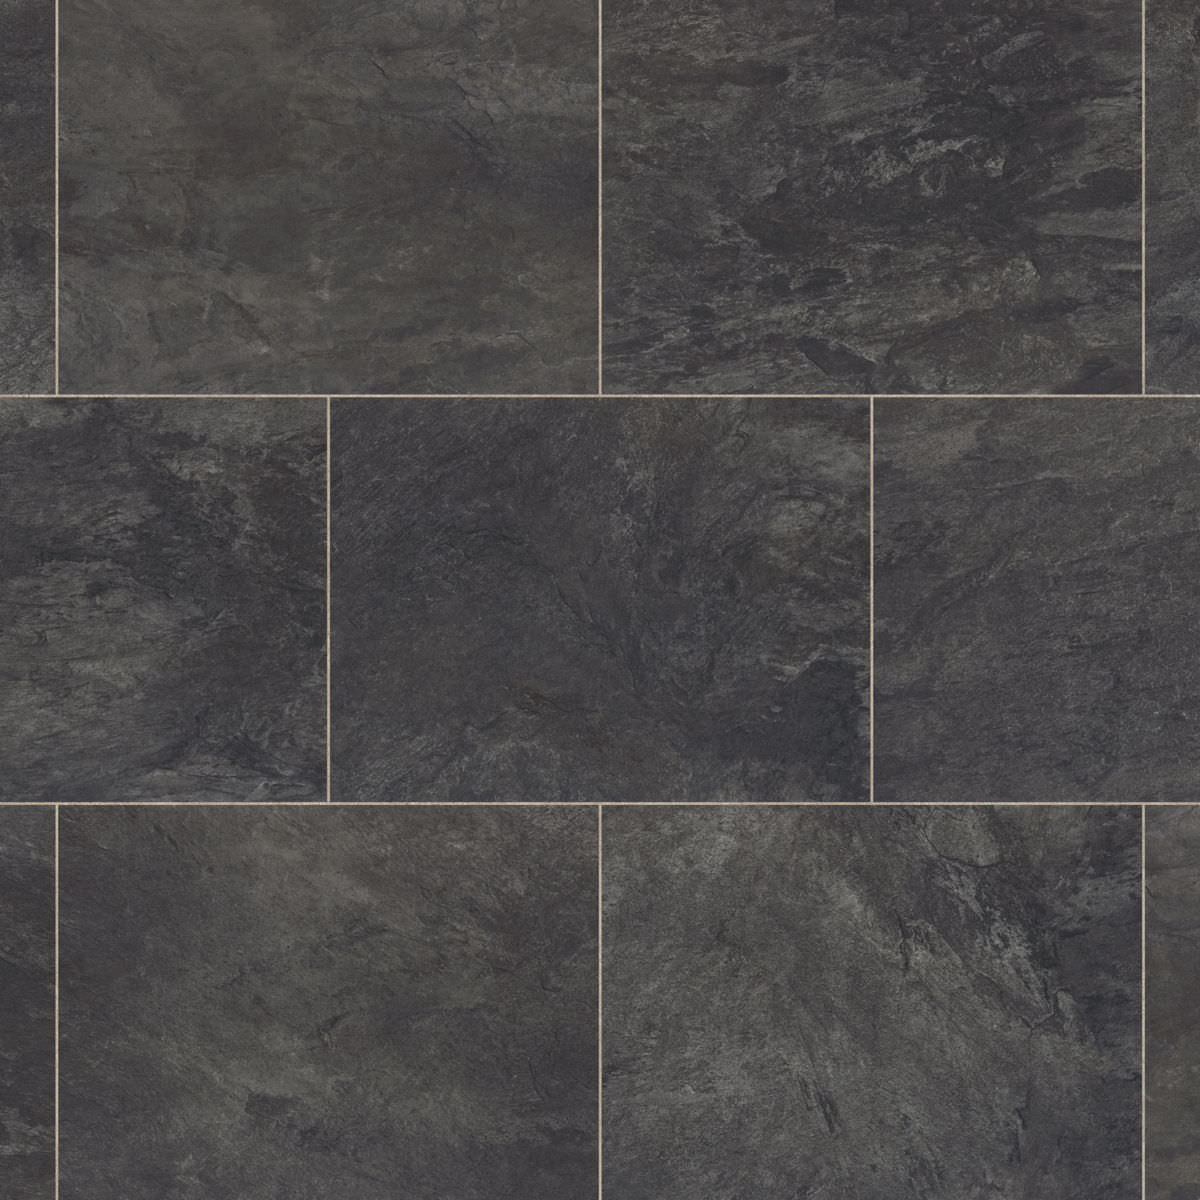 Slate vinyl plank flooring floor tiles cheap slate flooring brand karndean dailygadgetfo Image collections